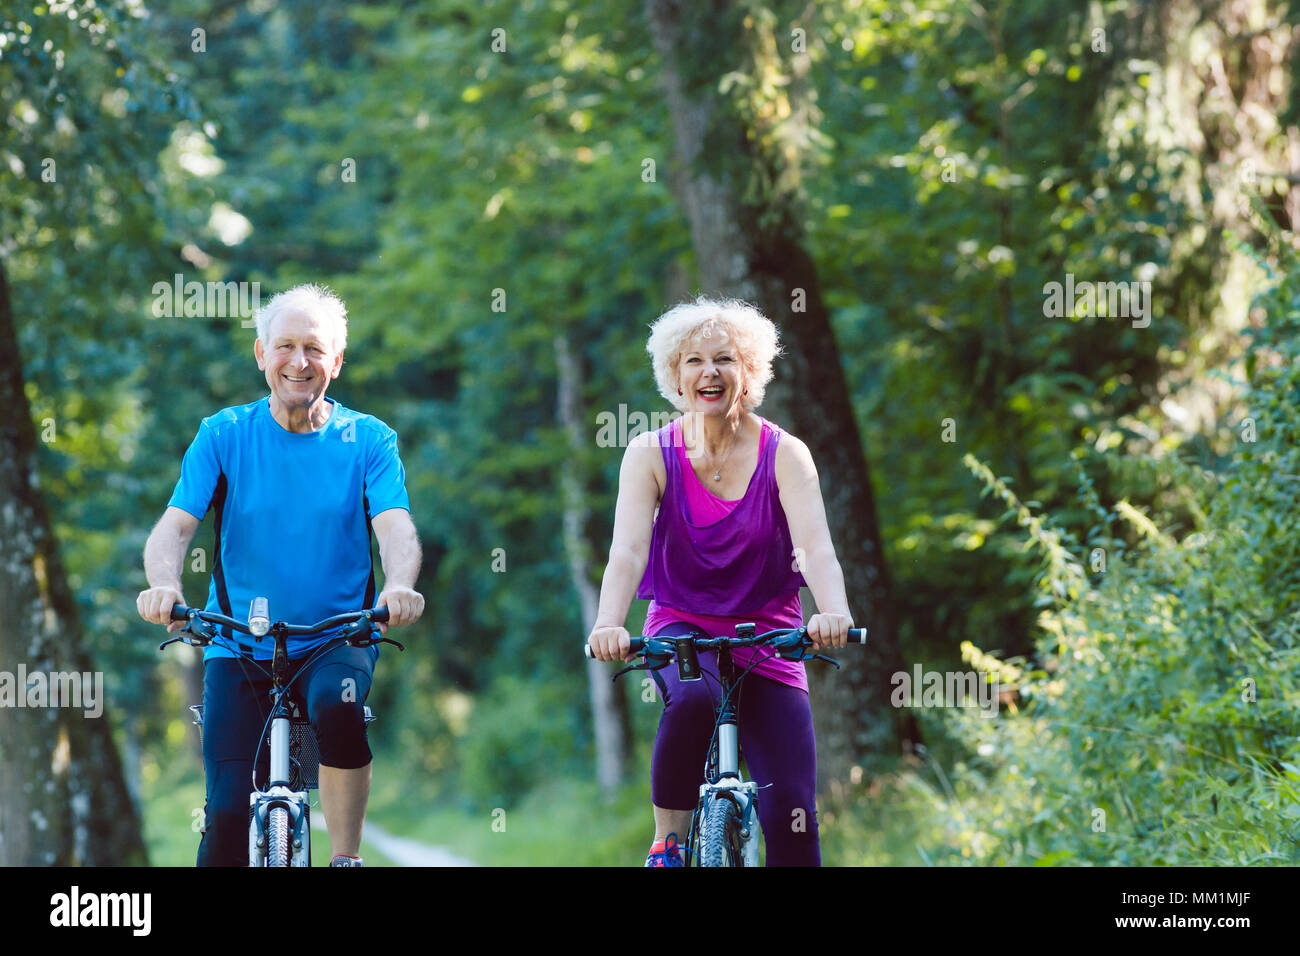 Happy and active senior couple riding bicycles outdoors in the park - Stock Image